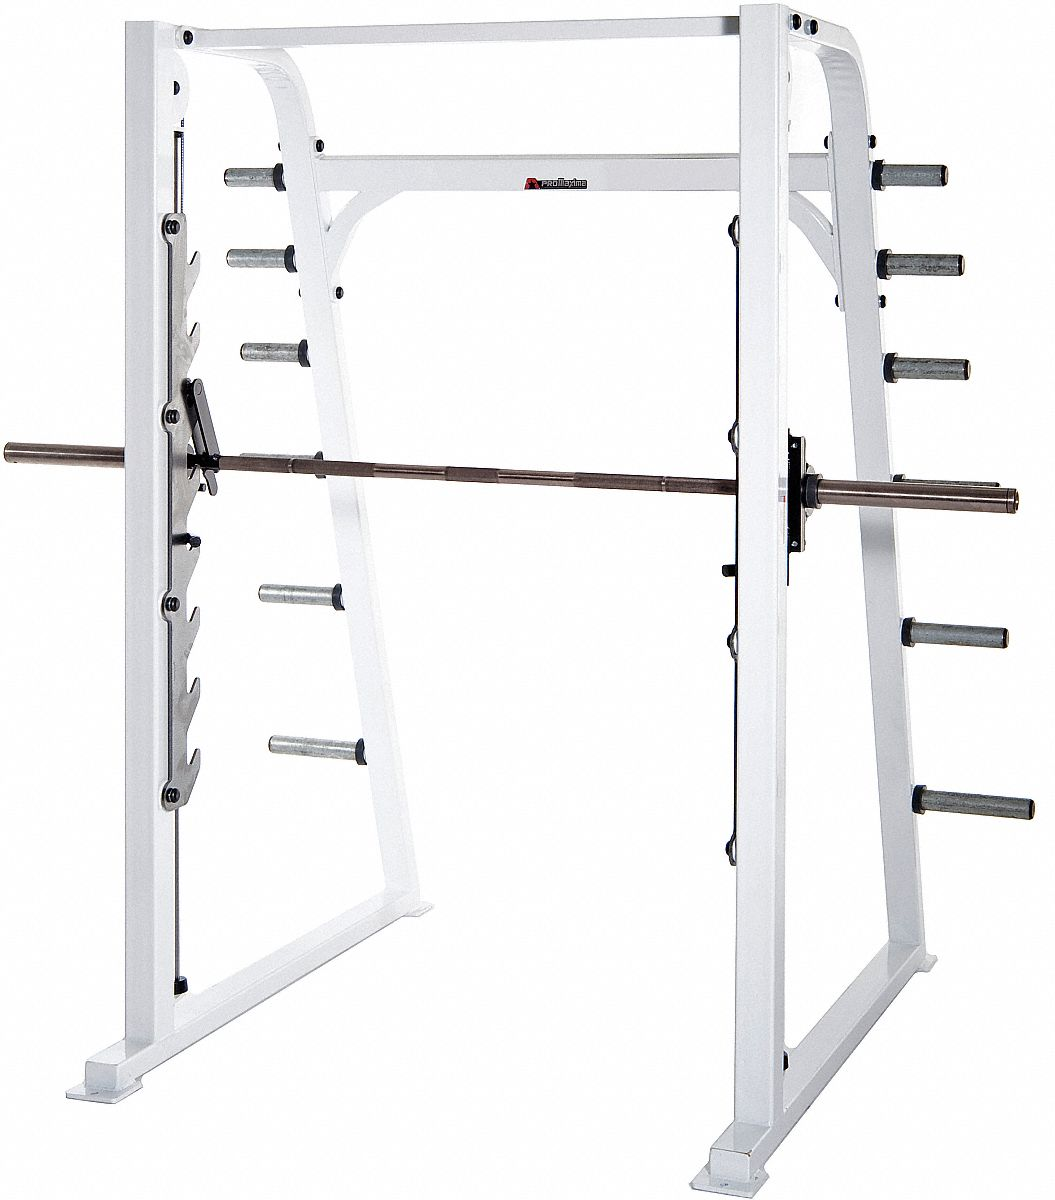 4 ft x 7 1/2 ft x 8 ft Raptor Smith Machine